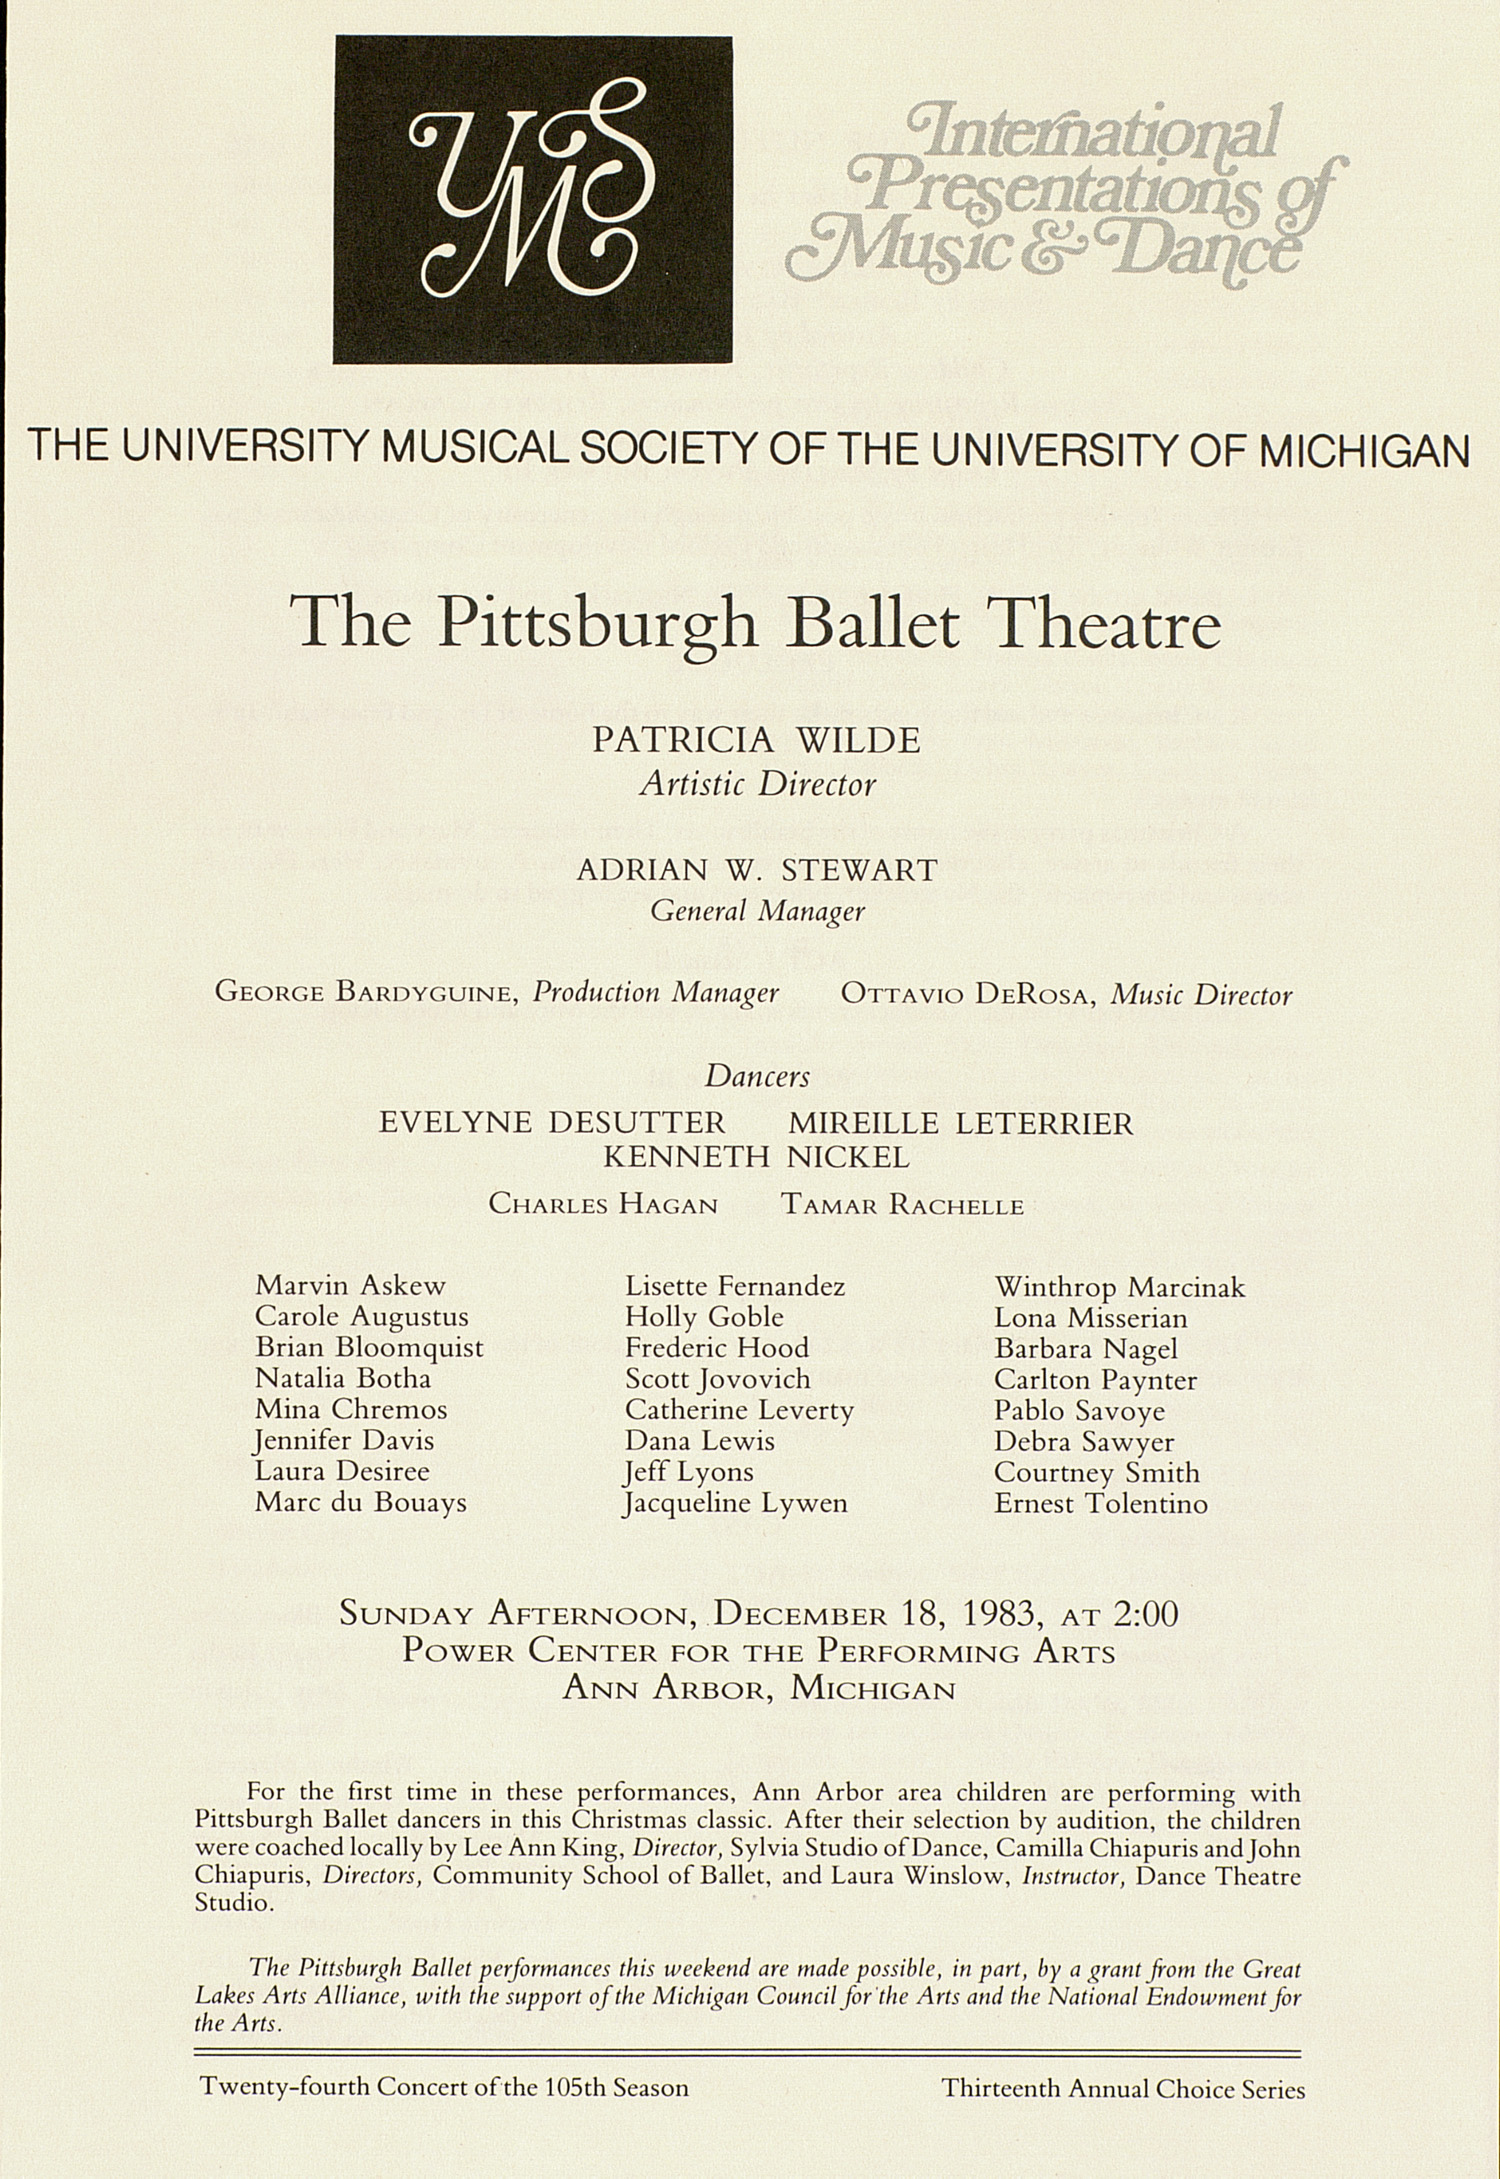 UMS Concert Program, December 18, 1983: International Presentations Of Music & Dance -- The Pittsburgh Ballet Theatre image